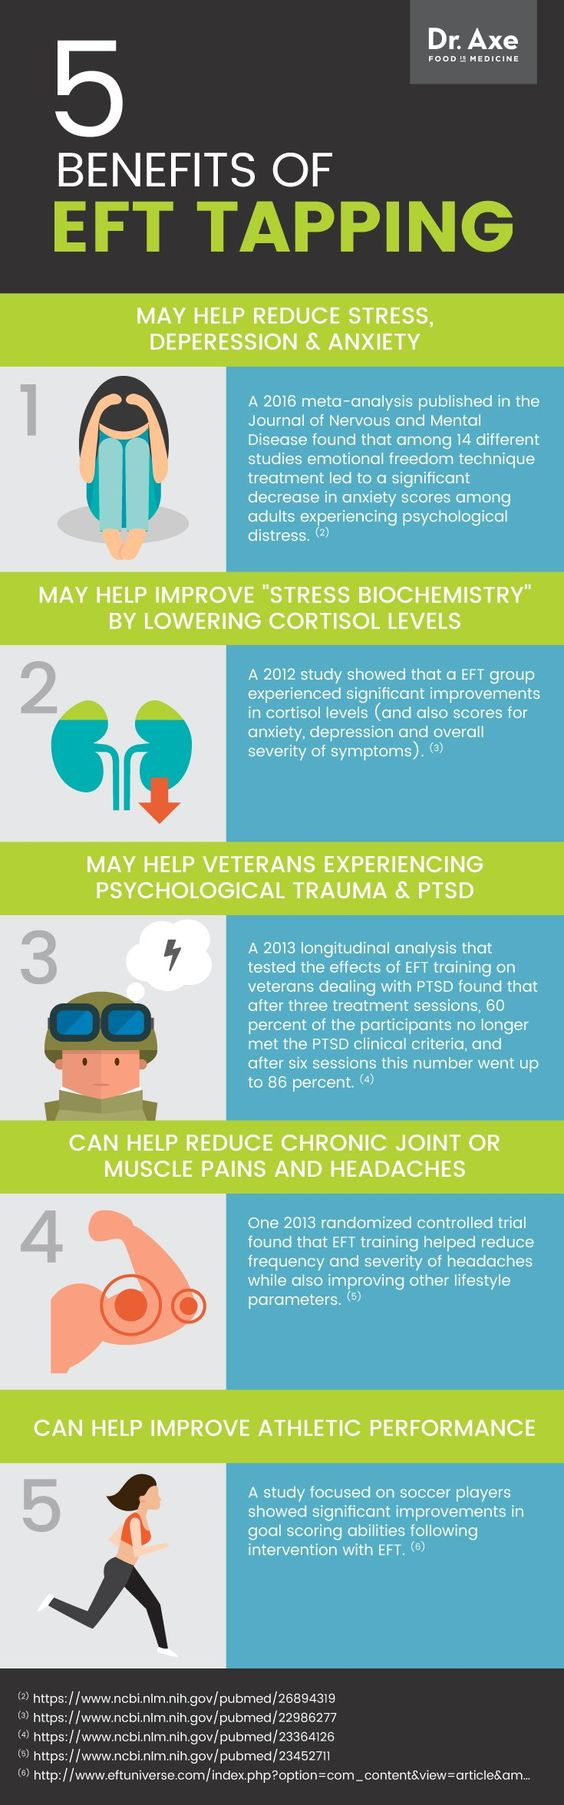 EFT Benefits